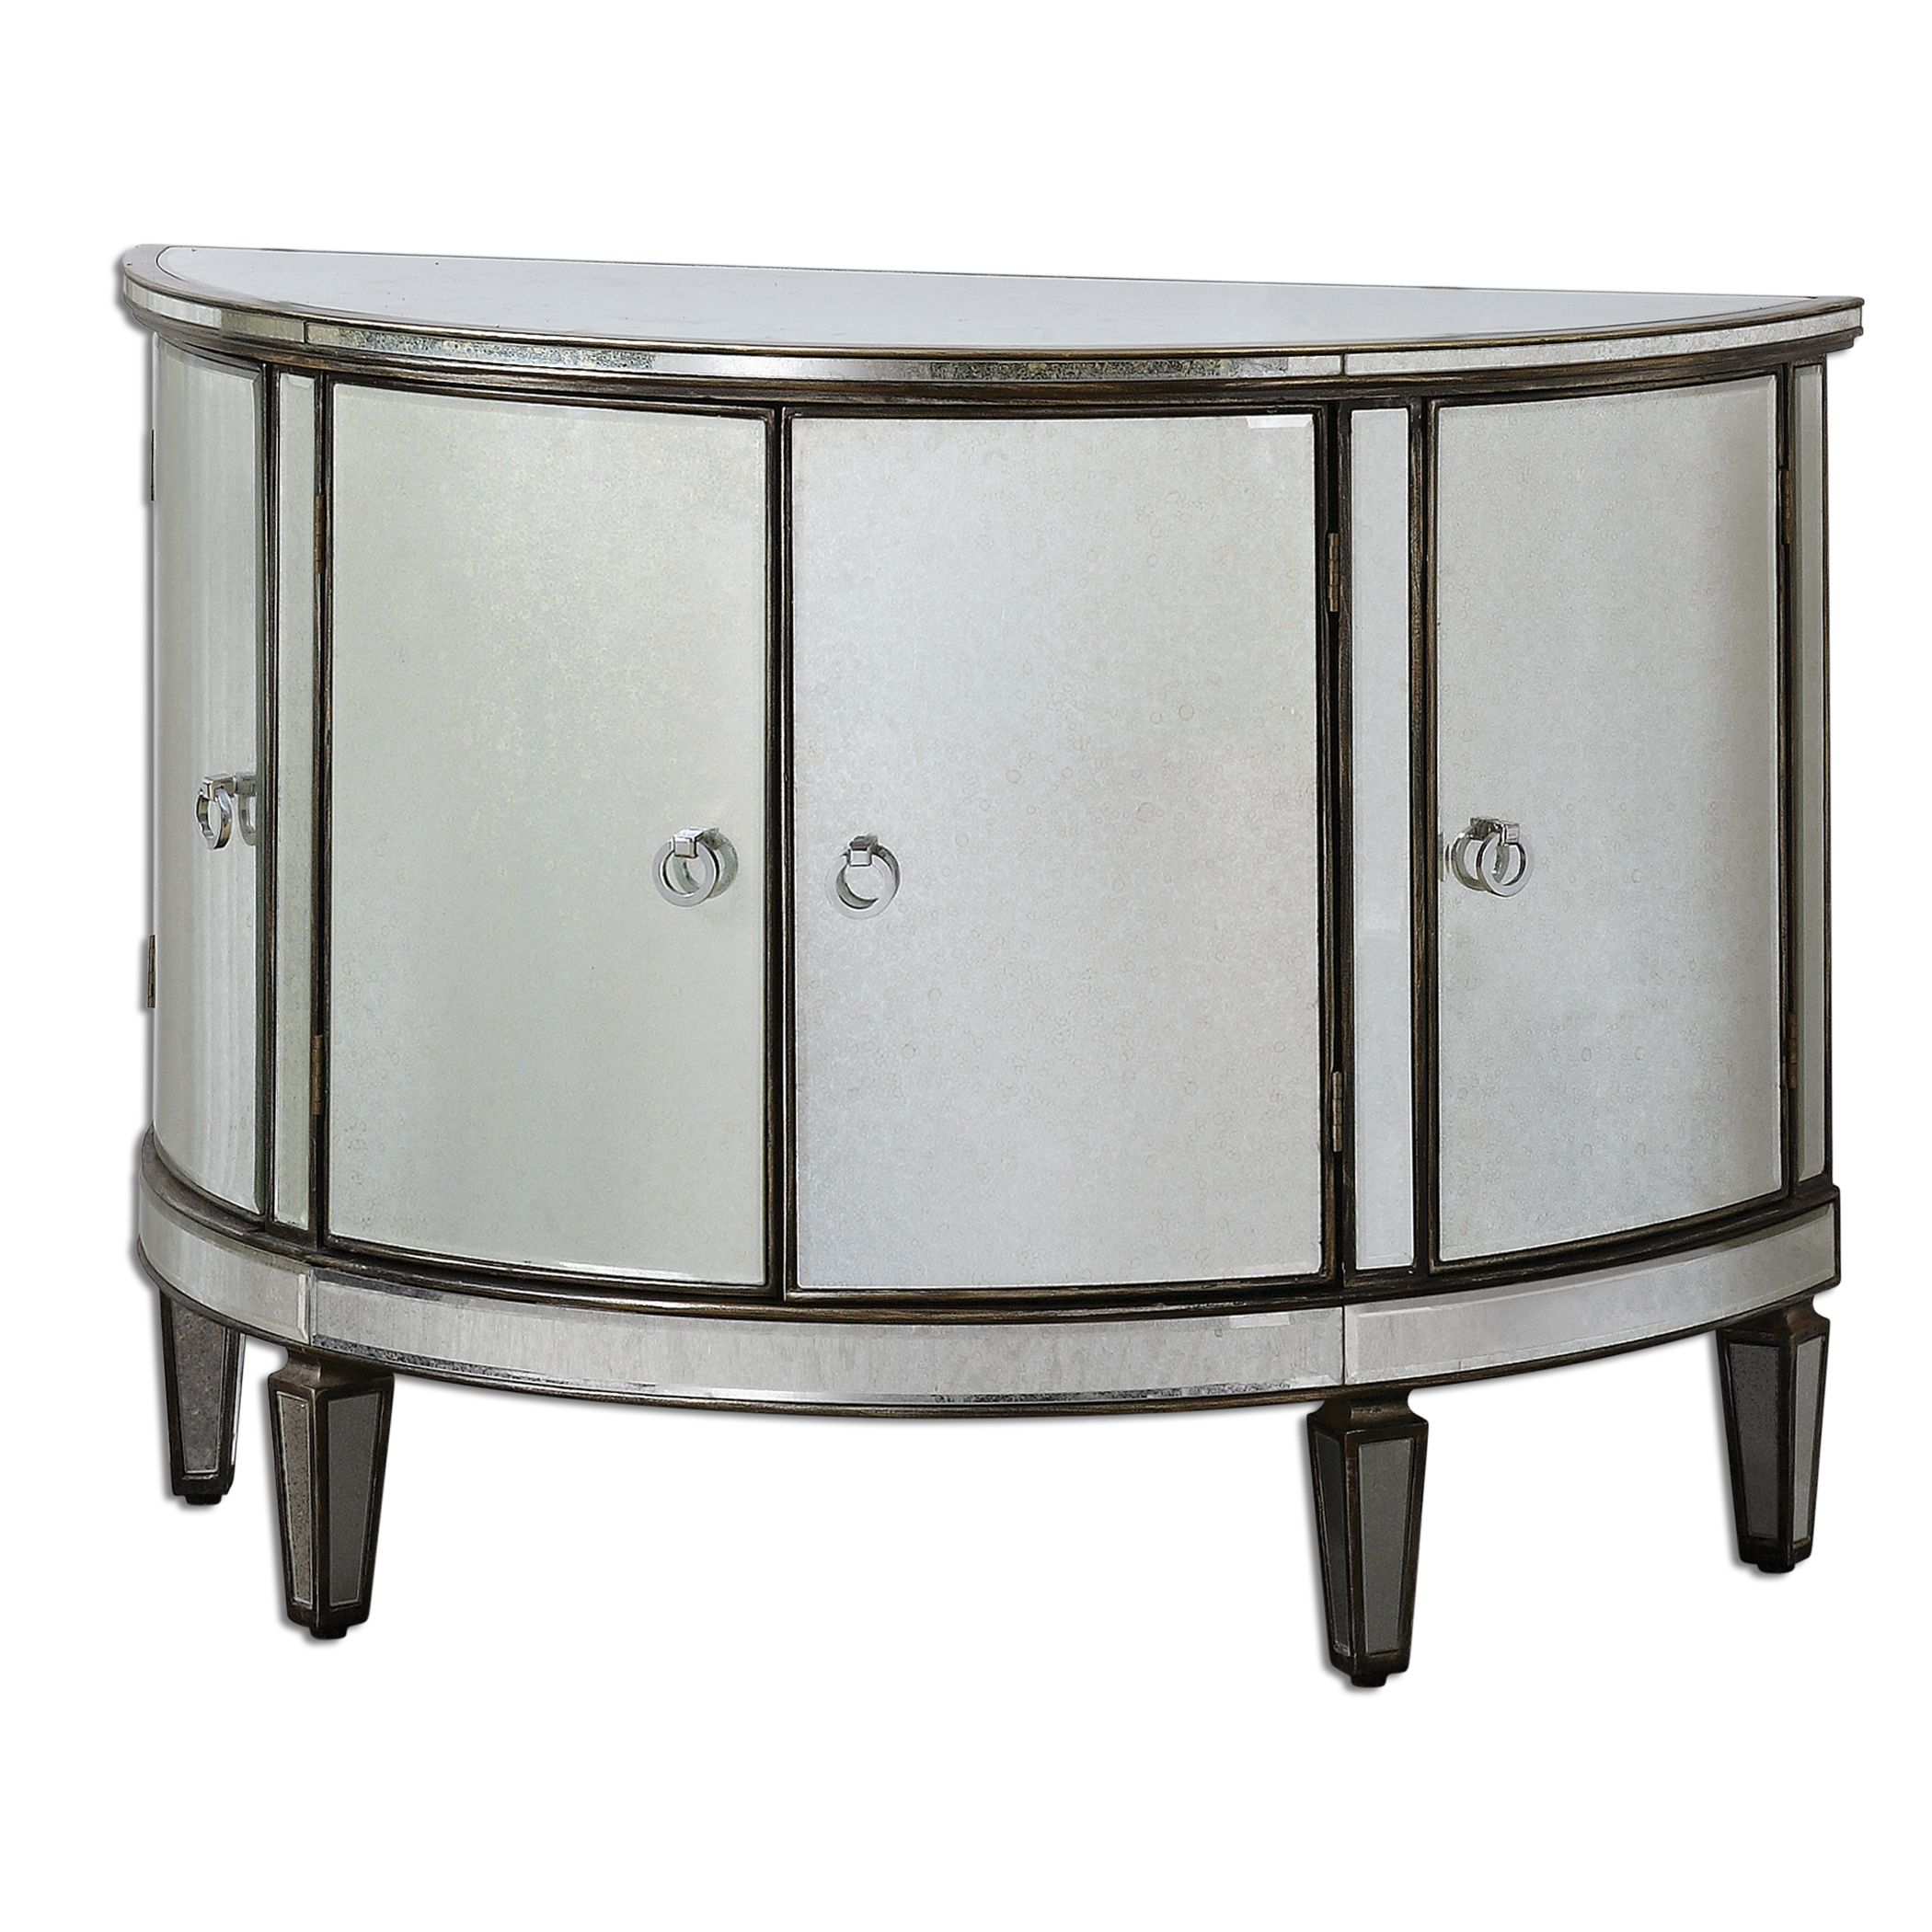 curved mirrored console cabinet with antique bronze solid bronze frame 42